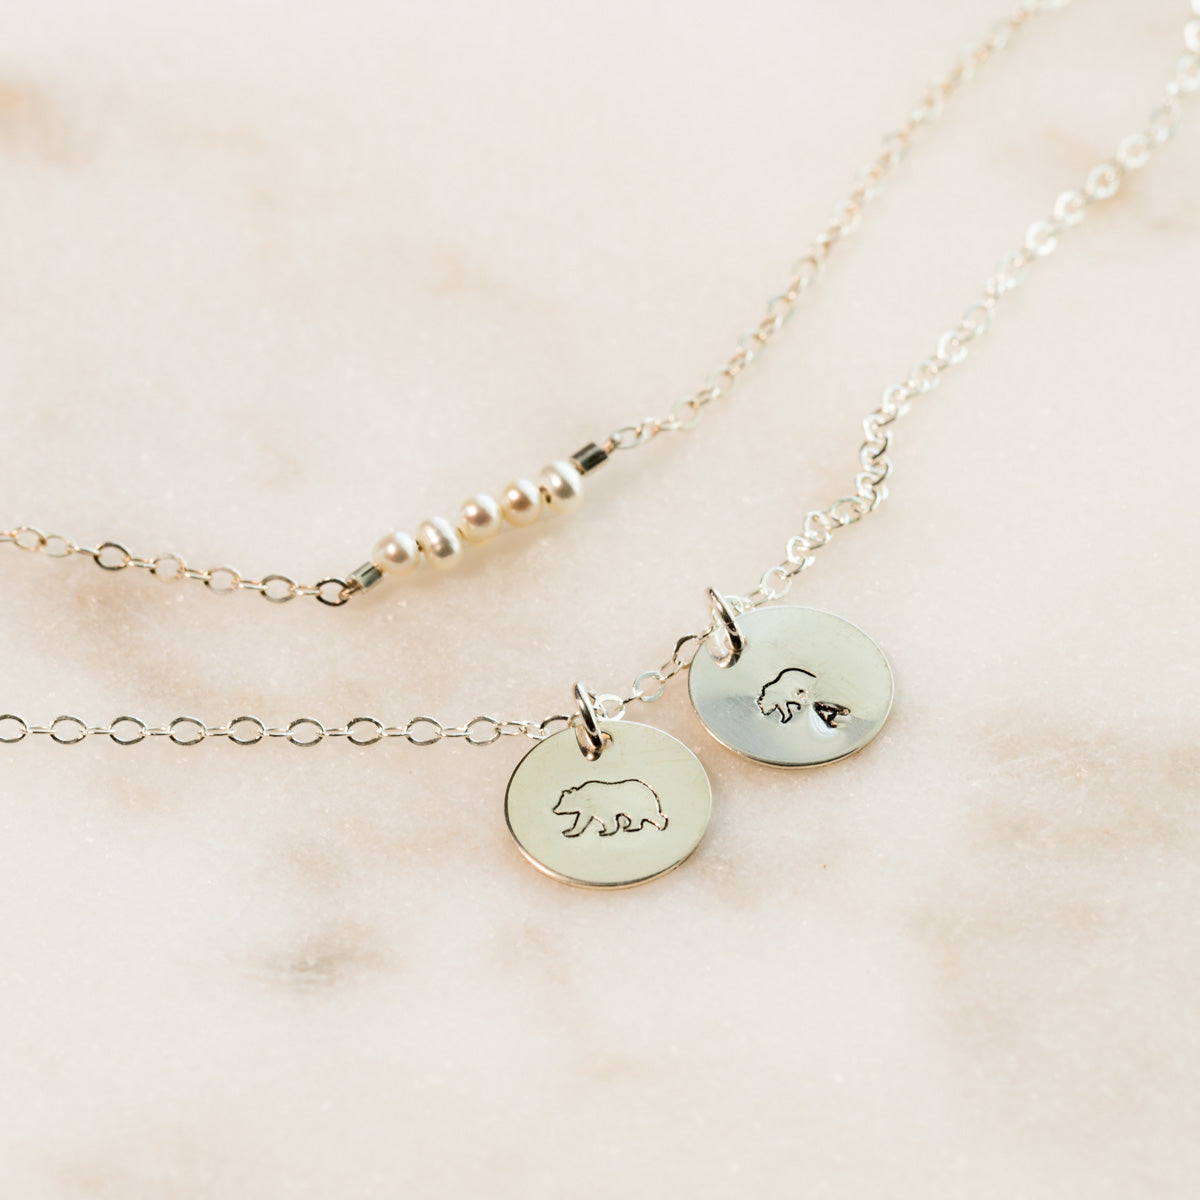 Hand-stamped Necklace, Mama Bear Necklace, Layered Pearl Necklace, Dainty Necklace, Minimal Necklace, Gift for Mom, Gemstone Necklace, Liz.Beth Jewelry Co.